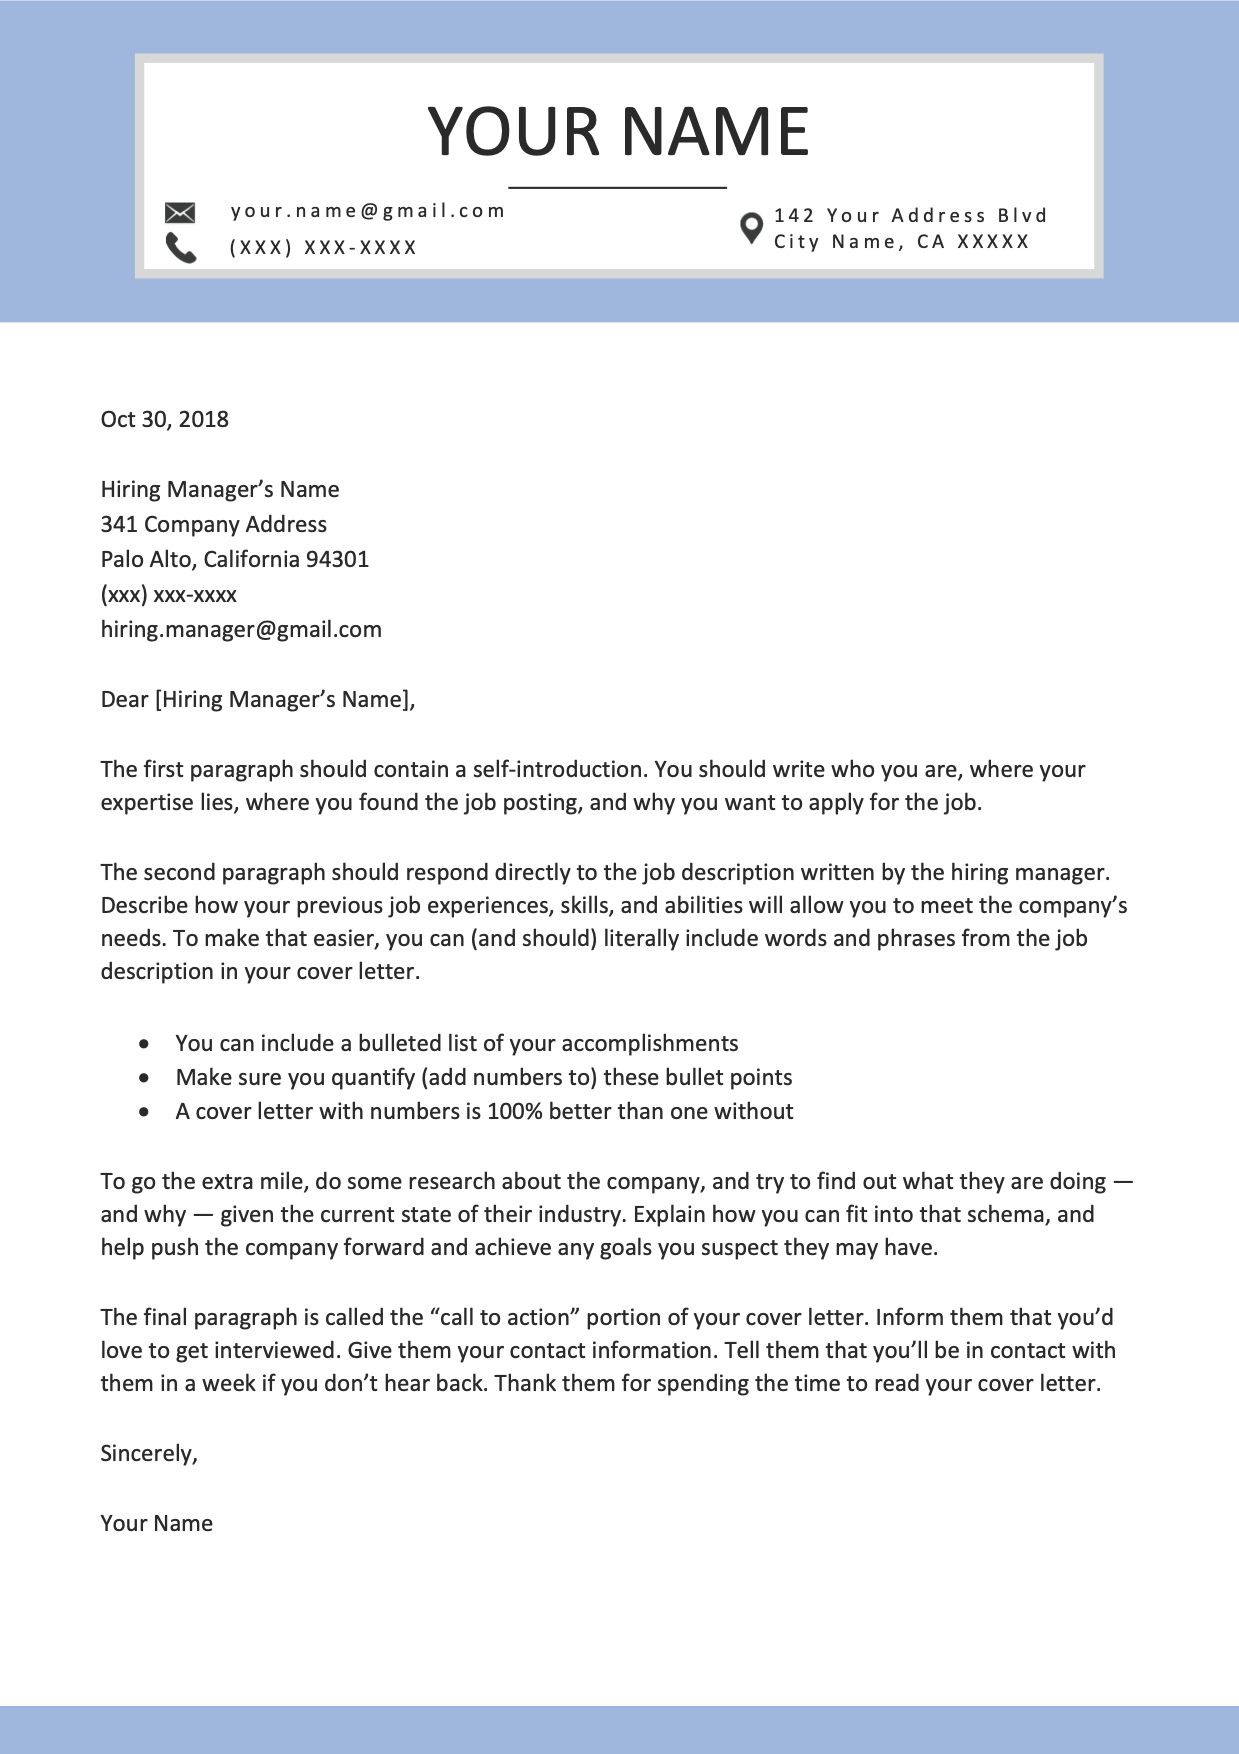 Cosmopolitan Sky Cover Letter Rg Cover Letter Template Cover Letter Template Free Professional Cover Letter Template